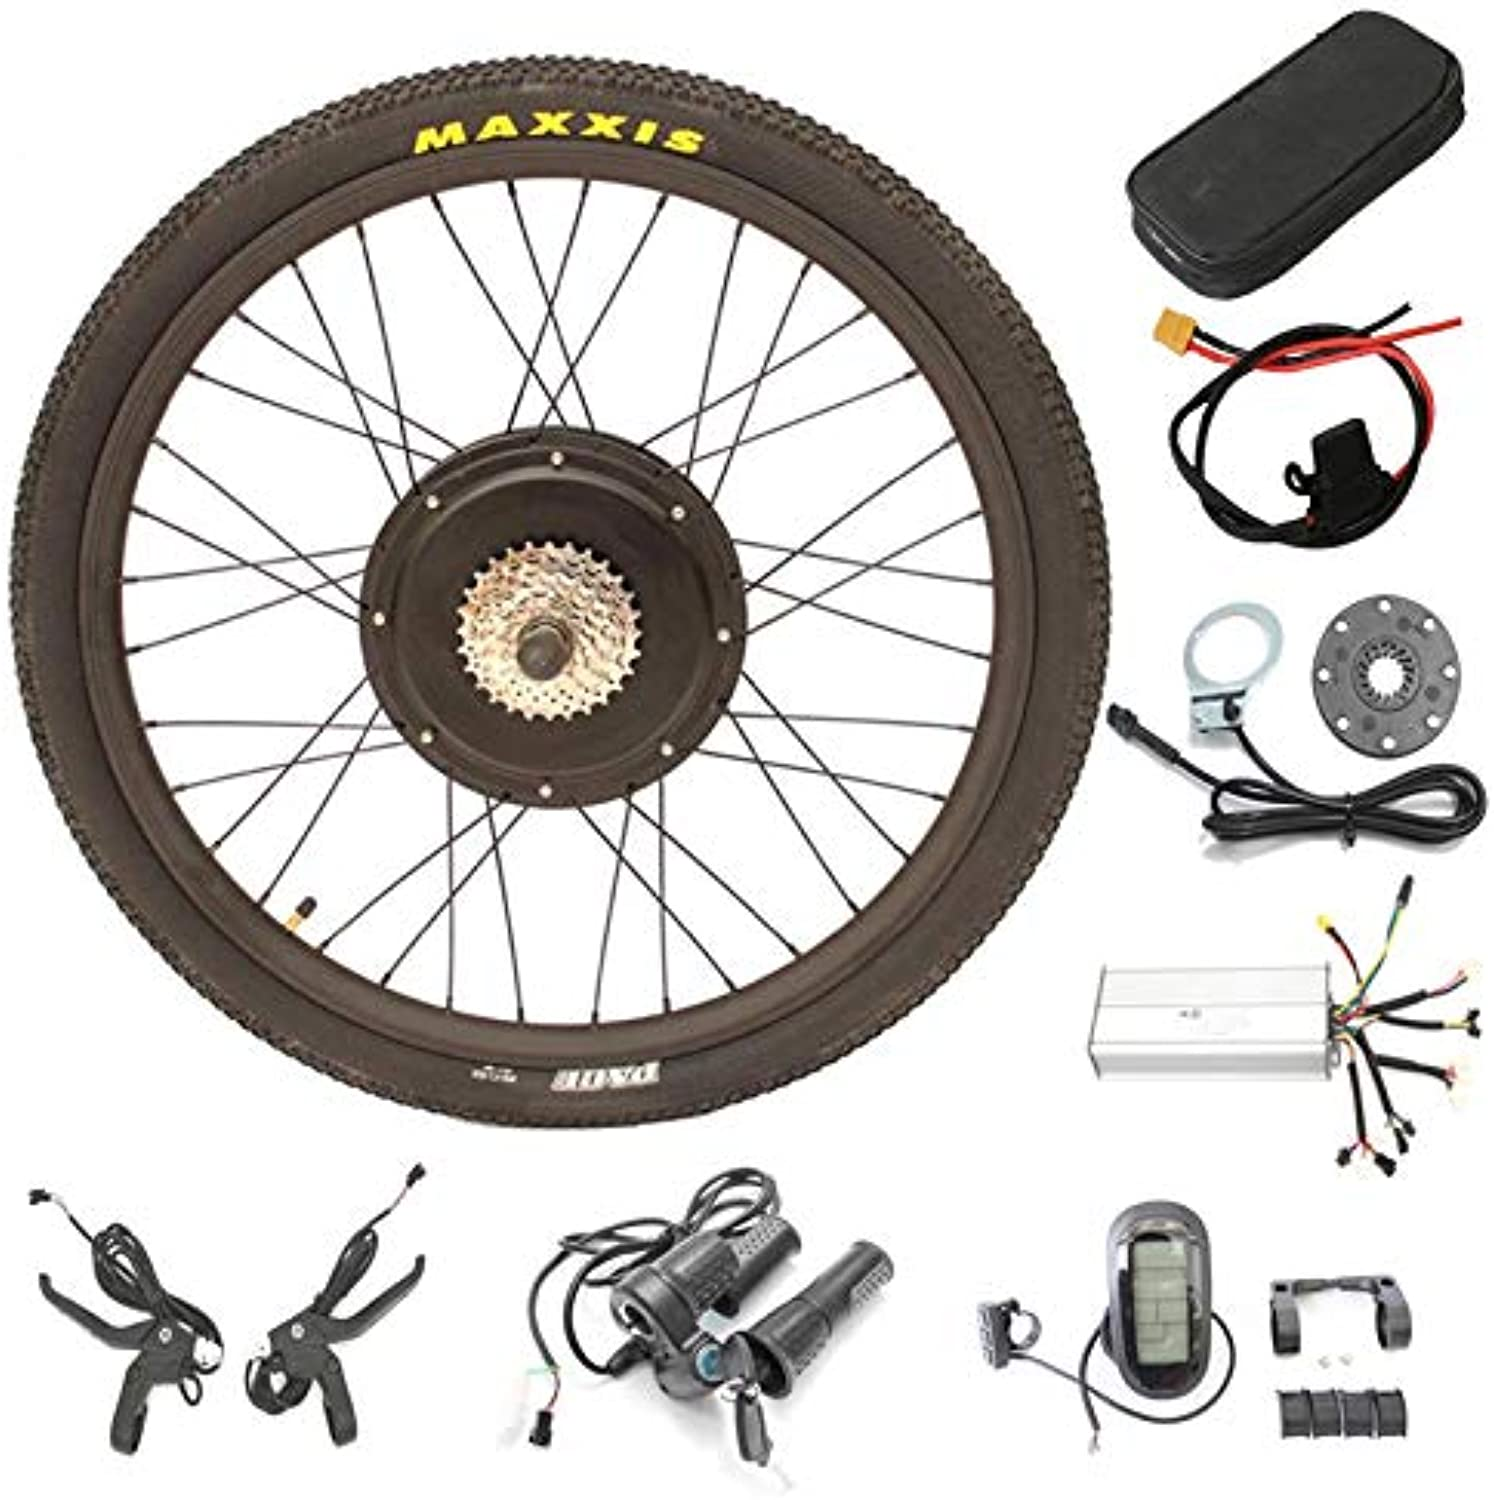 LOLTRA MTB EBike Conversion Kit 48V 1500W Rear Wheel Conversion Kit with 26  27.5  28  Maxxis Tire LCD6 Display with USB Port